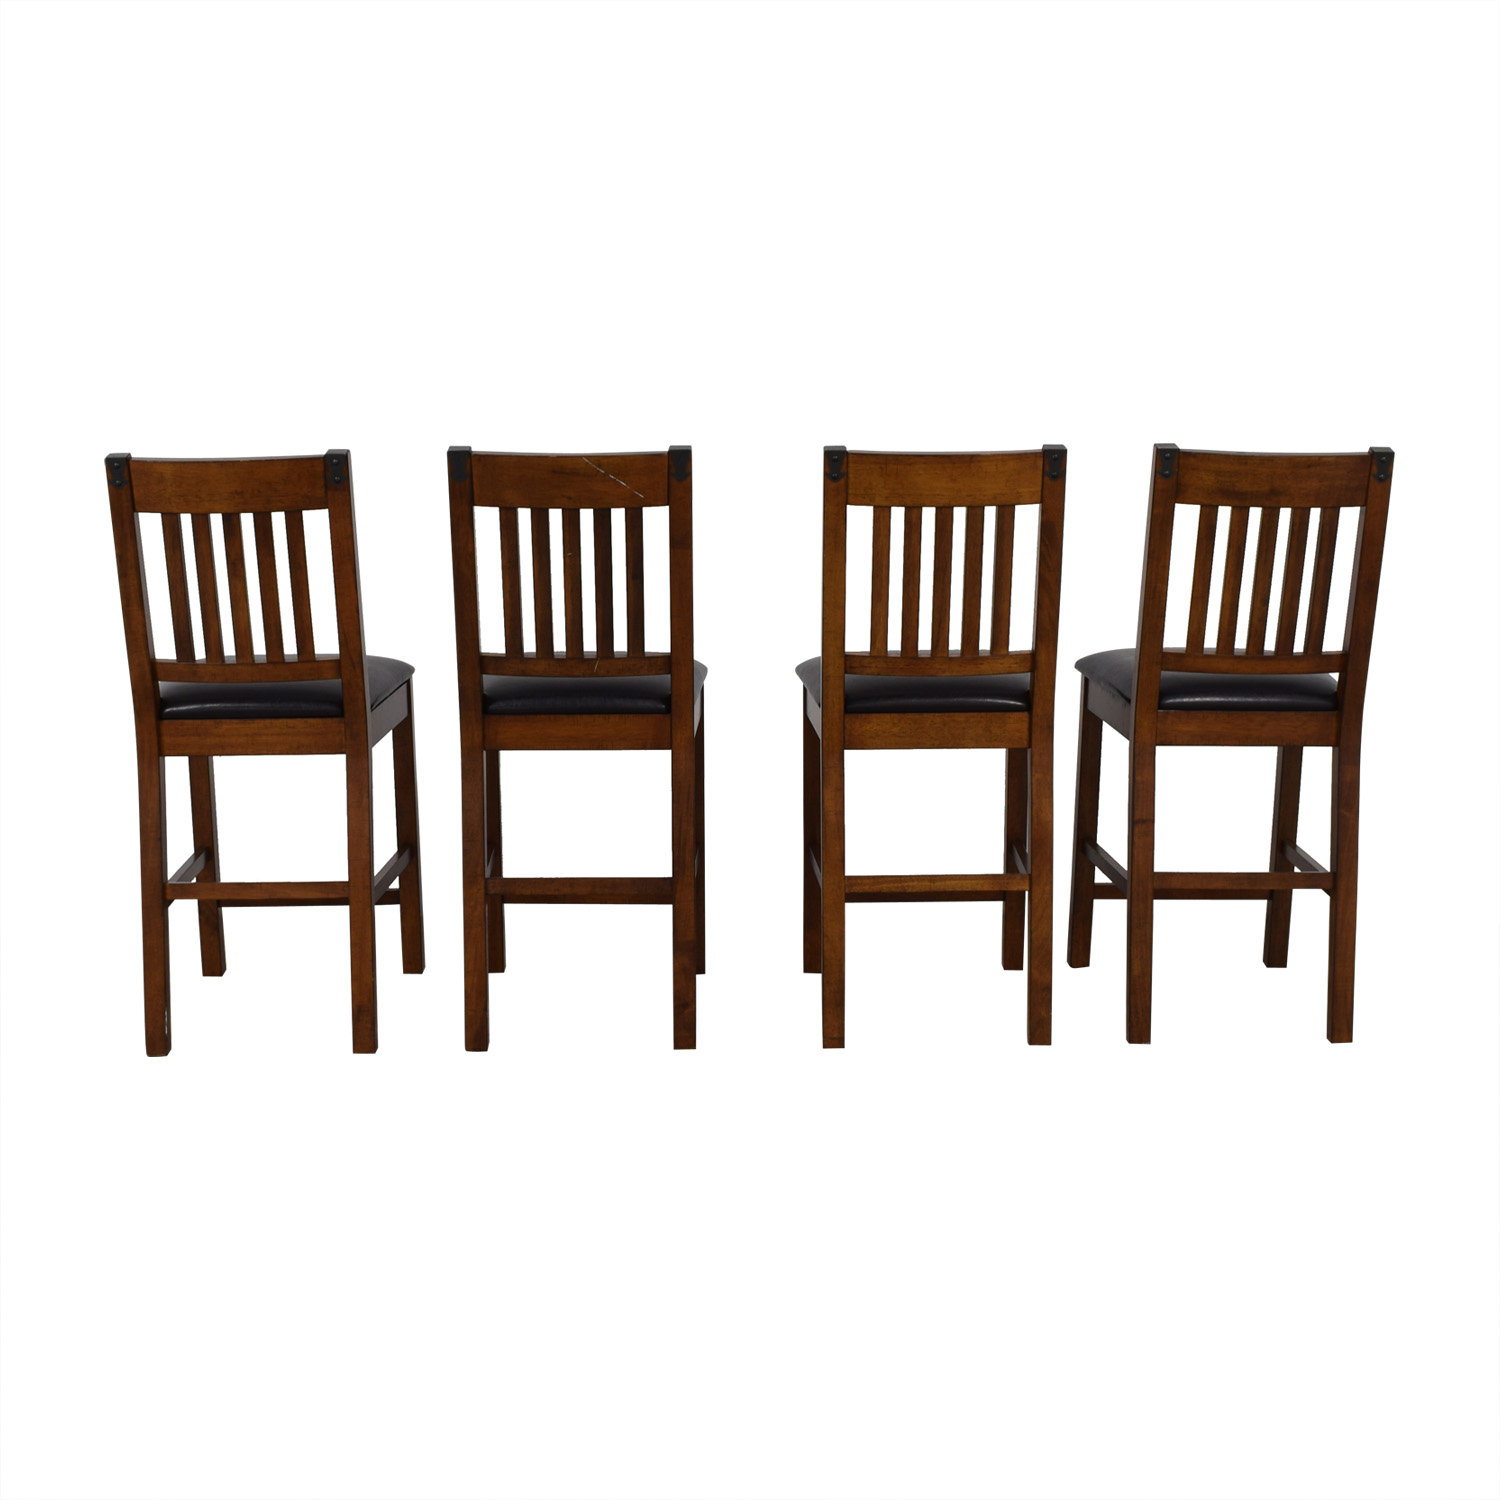 Wood and Black Dining Chairs dimensions